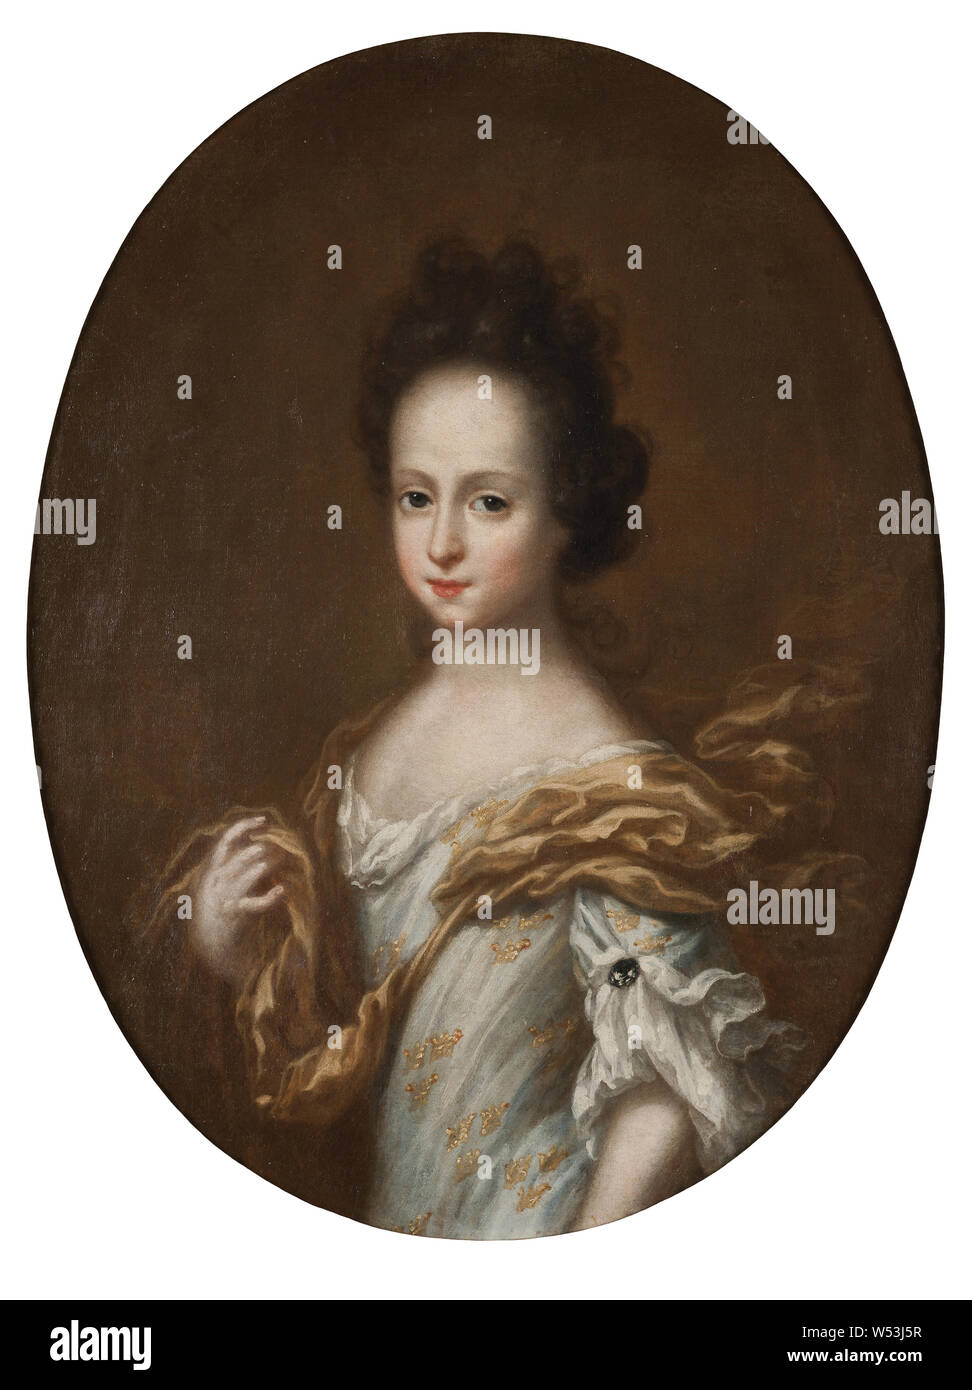 Attributed to David Klöcker Ehrenstrahl, Princess Hedvig Sofia, Hedvig Sophia of Sweden (1681–1708), Swedish princess and a Duchess Consort of Holstein-Gottorp, Hedvig Sofia, 1681-1708, Princess of Sweden, duchess of Holstein, Gottorp, painting, Hedvig Sophia of Sweden, oil on canvas, Height, 74 cm (29.1 inches), Width, 57 cm (22.4 inches) Stock Photo